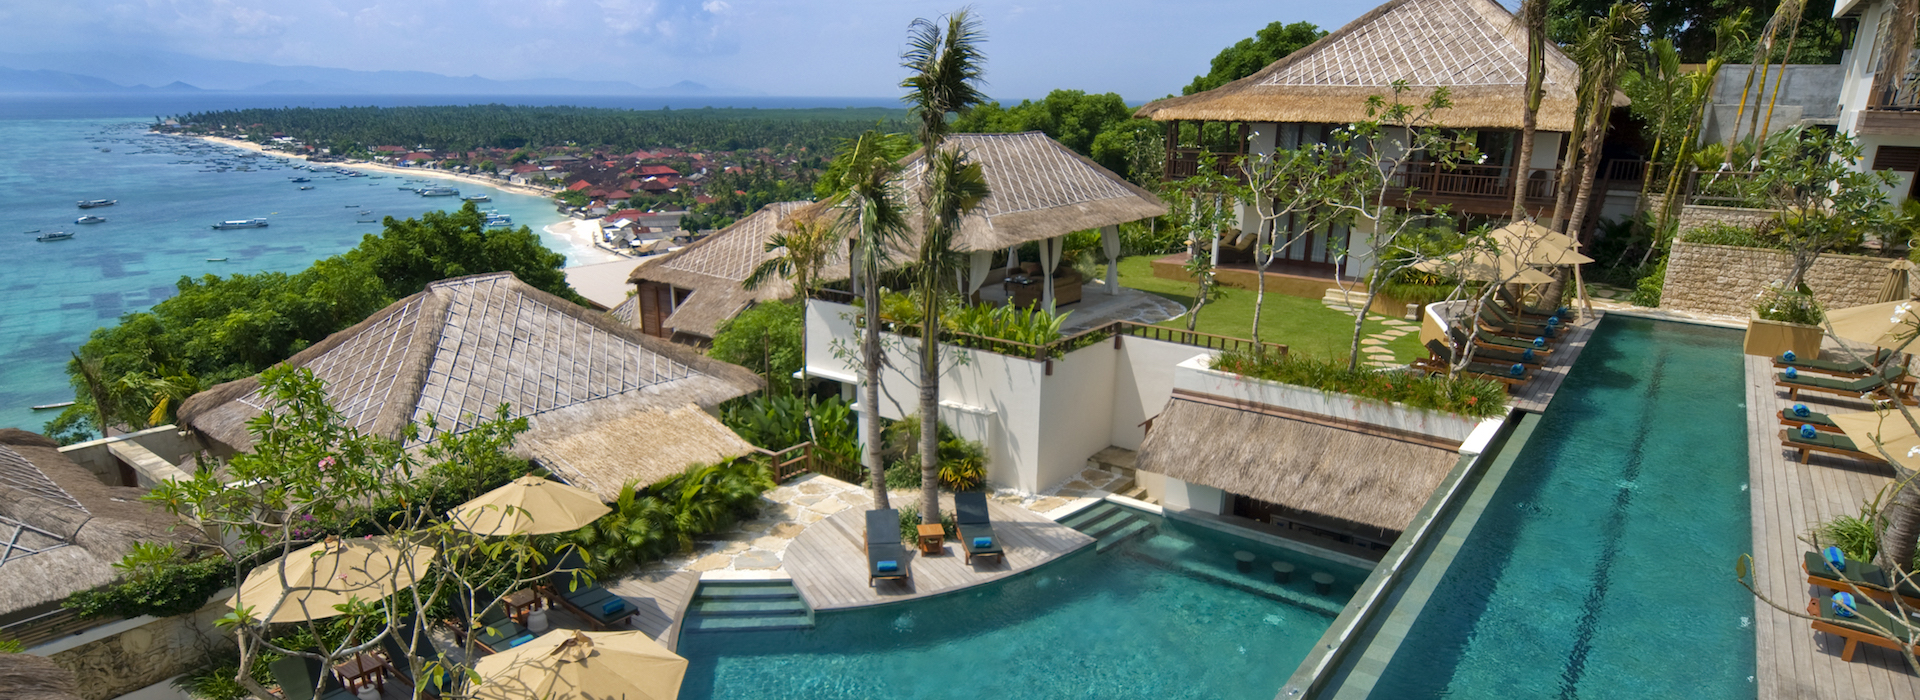 Batu Karang Resort, The Lembongan Traveller, Nusa Lembongan Villas, Lembongan Villas, Lembongan accommodation, Lembongan Hotels, Lembongan Resorts